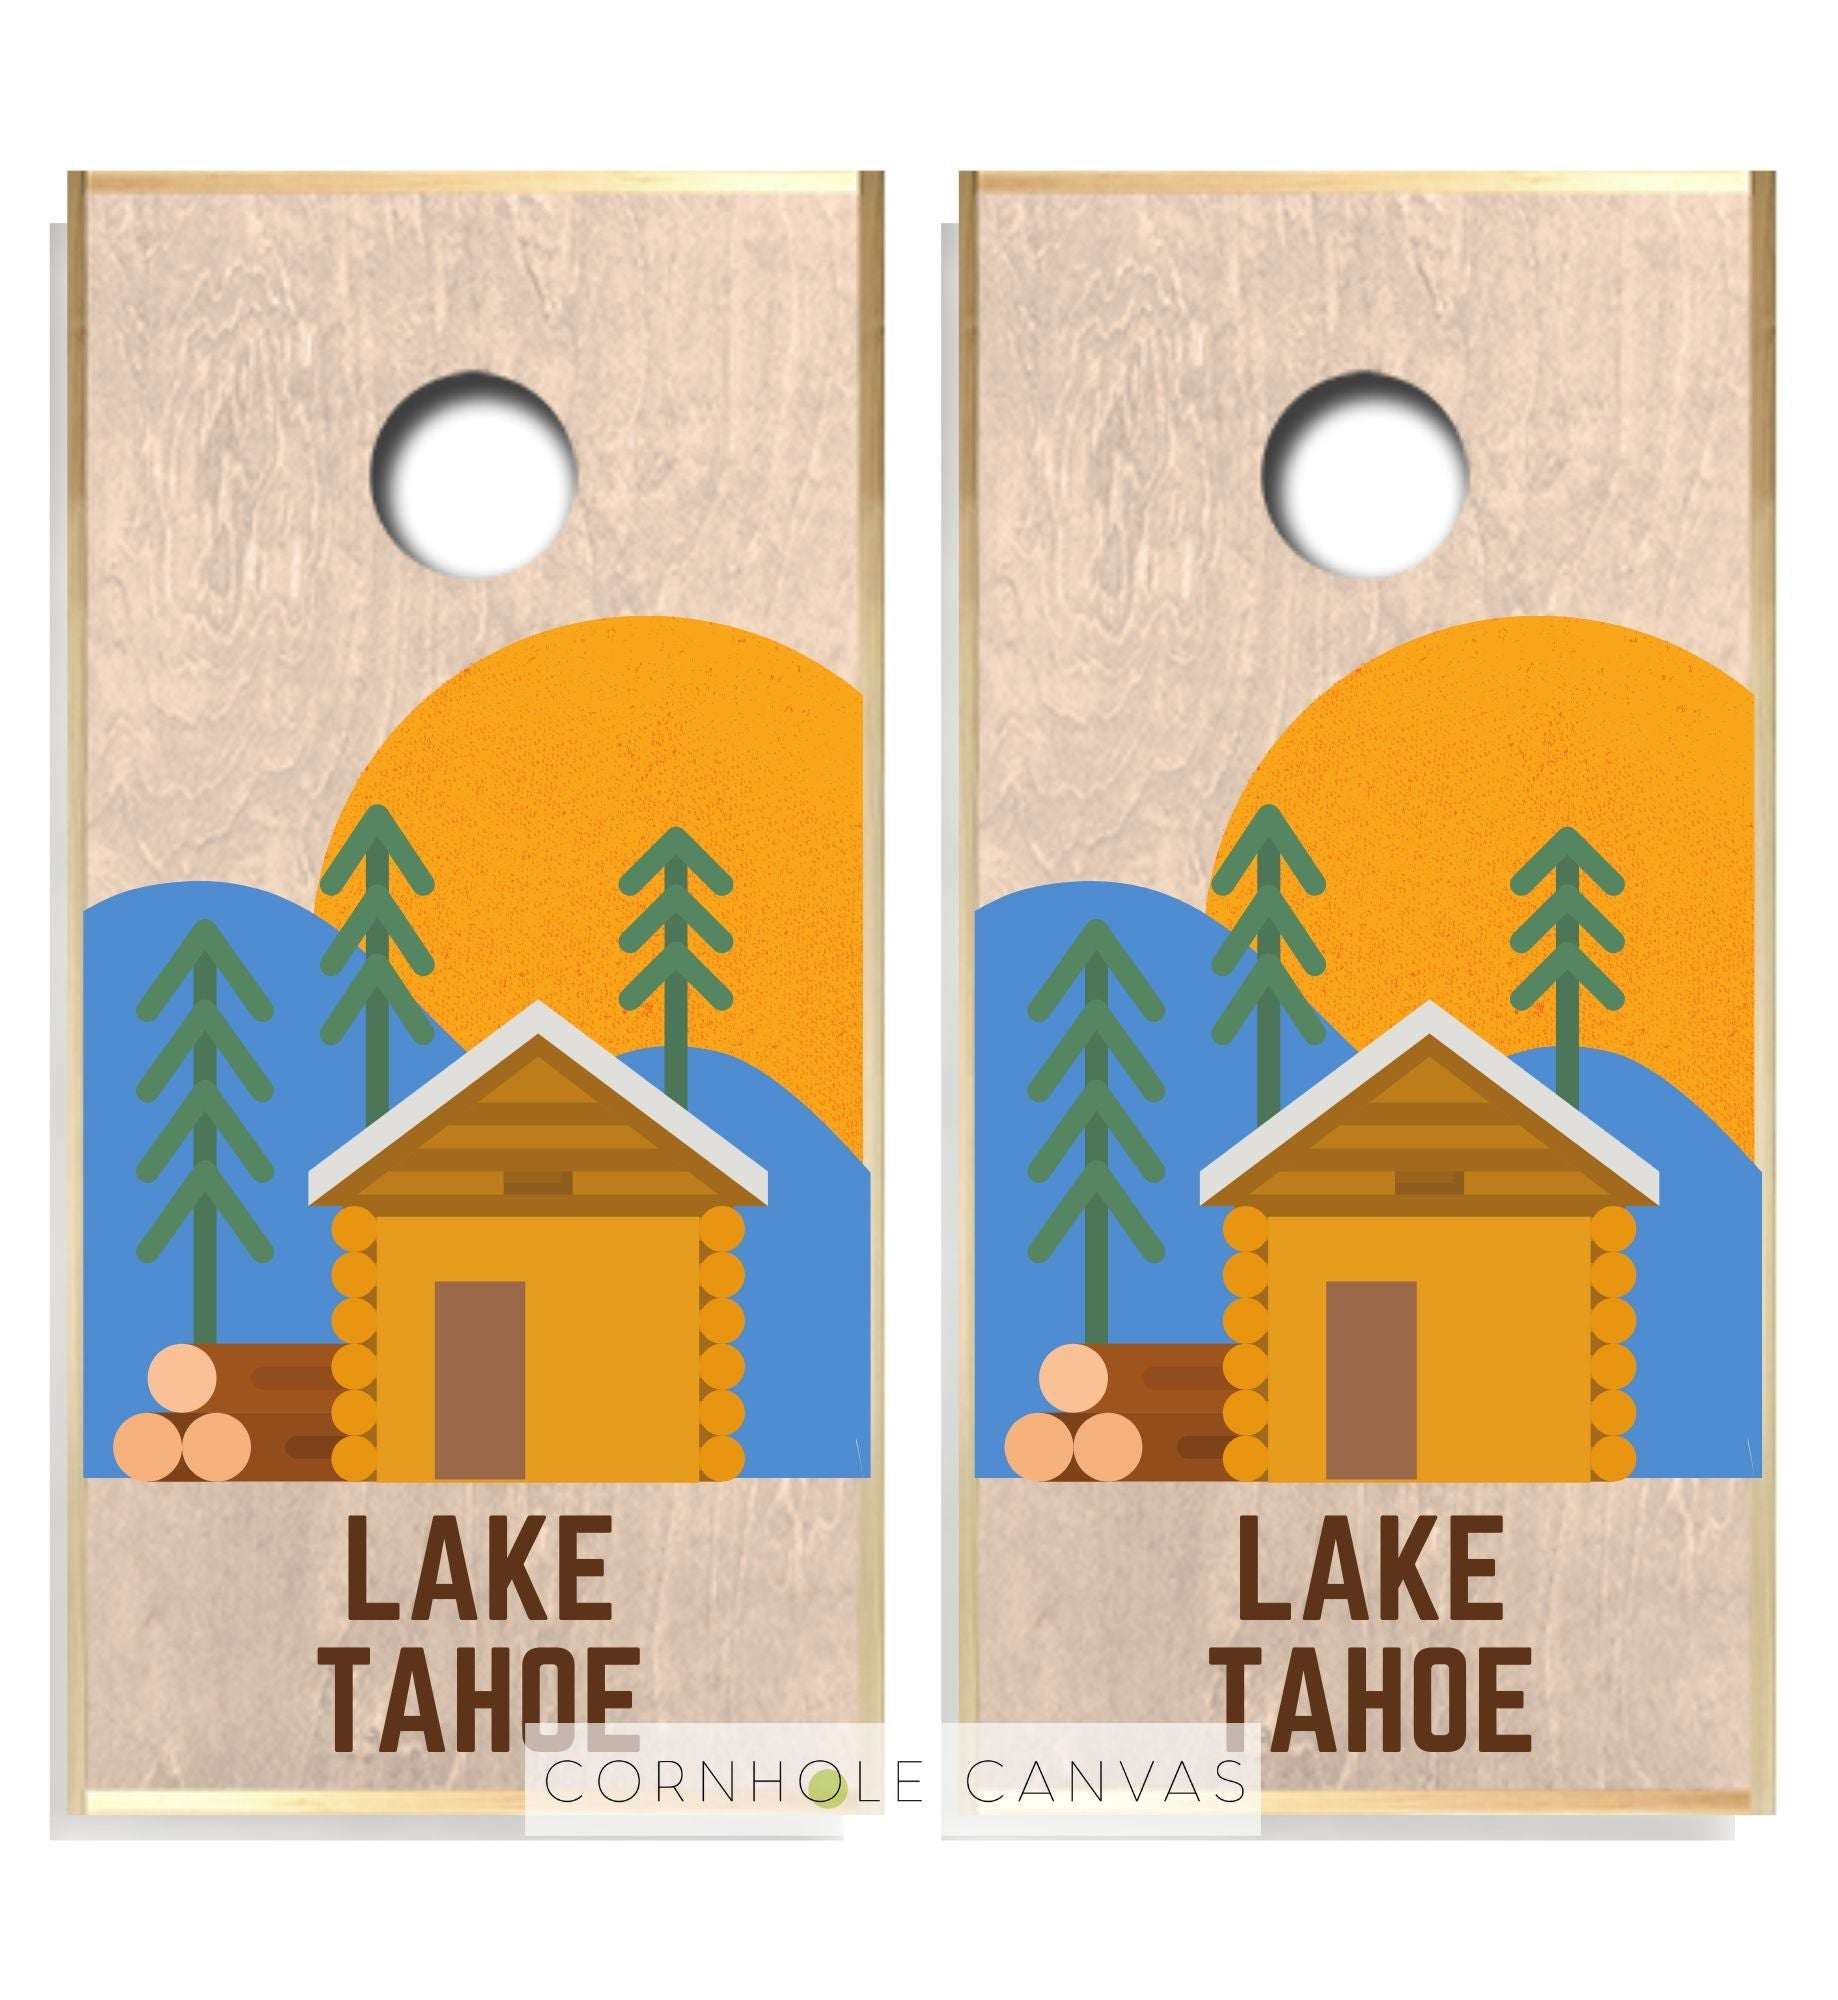 Regulation cornhole boards. Lake tahoe theme. Customizable set.